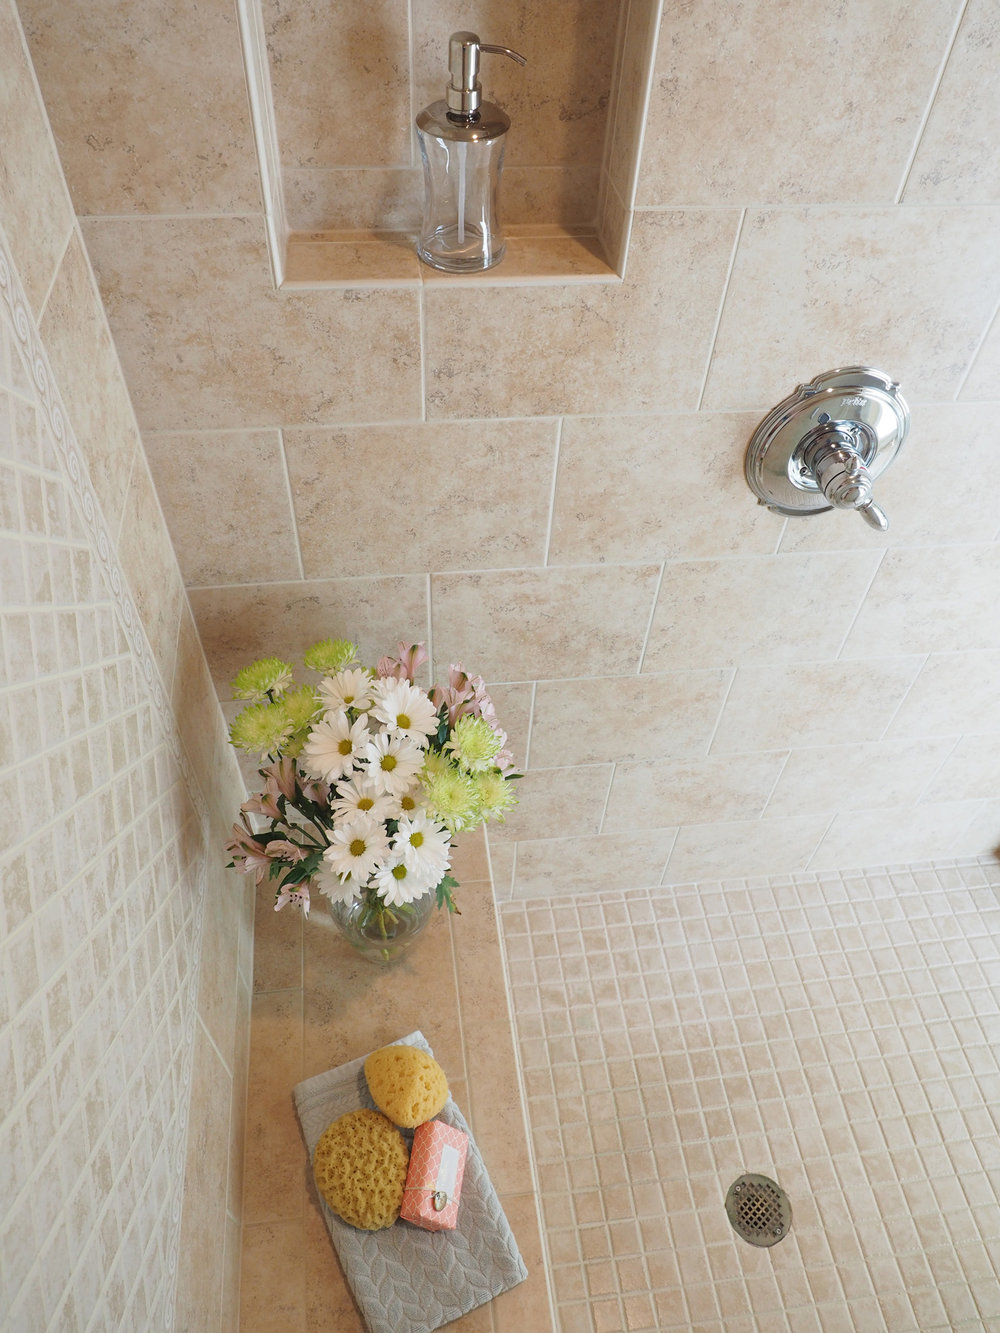 Because everyone has flowers in their shower .. right?!  I hope you have enjoyed the before and after of our master bathroom makeover. Not much was done but that change in paint color made all the difference. Thanks for stopping by!